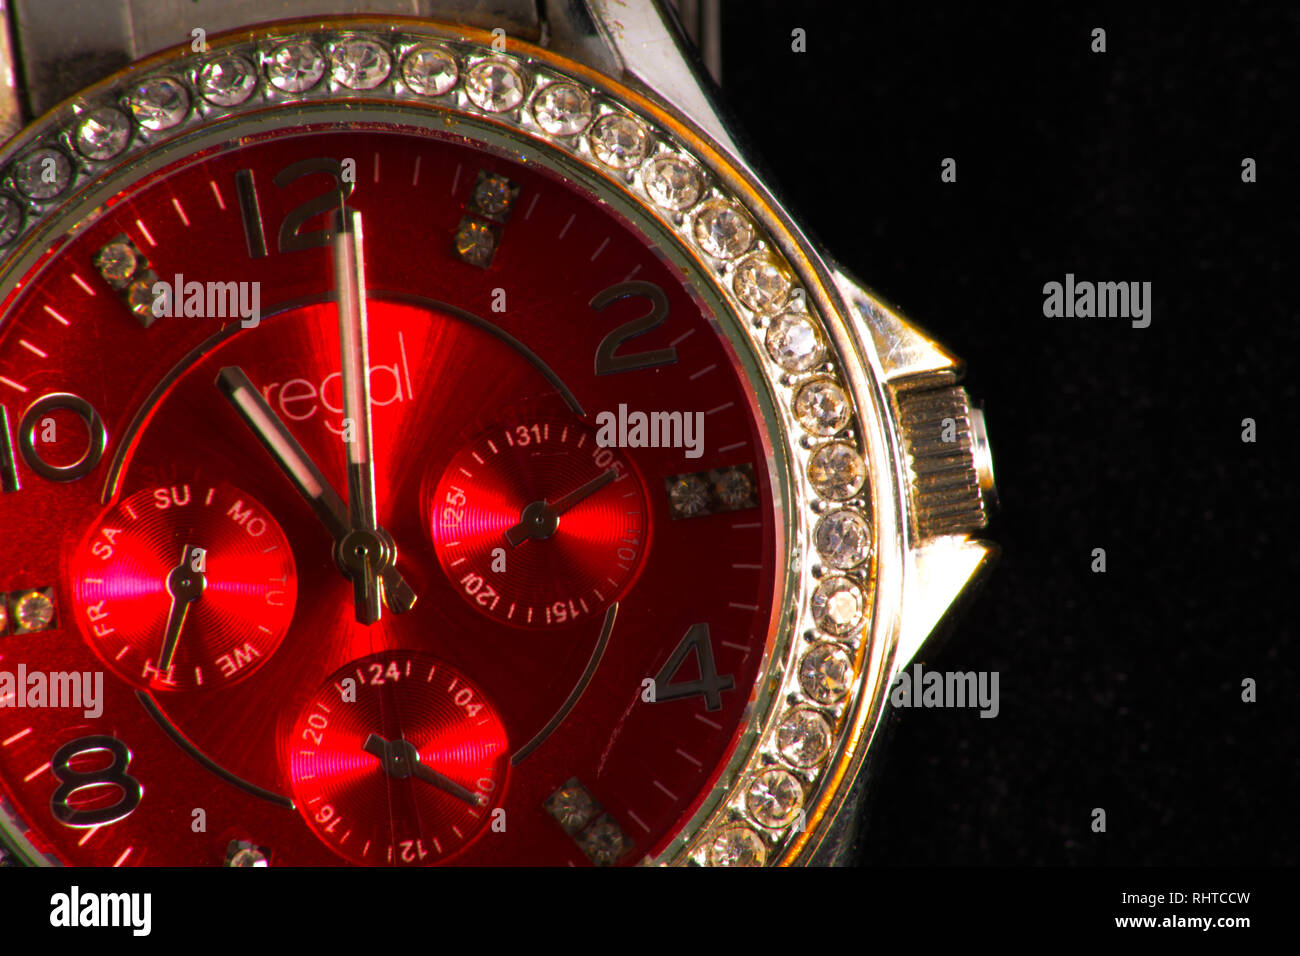 Red watch face multiple dials - Stock Image